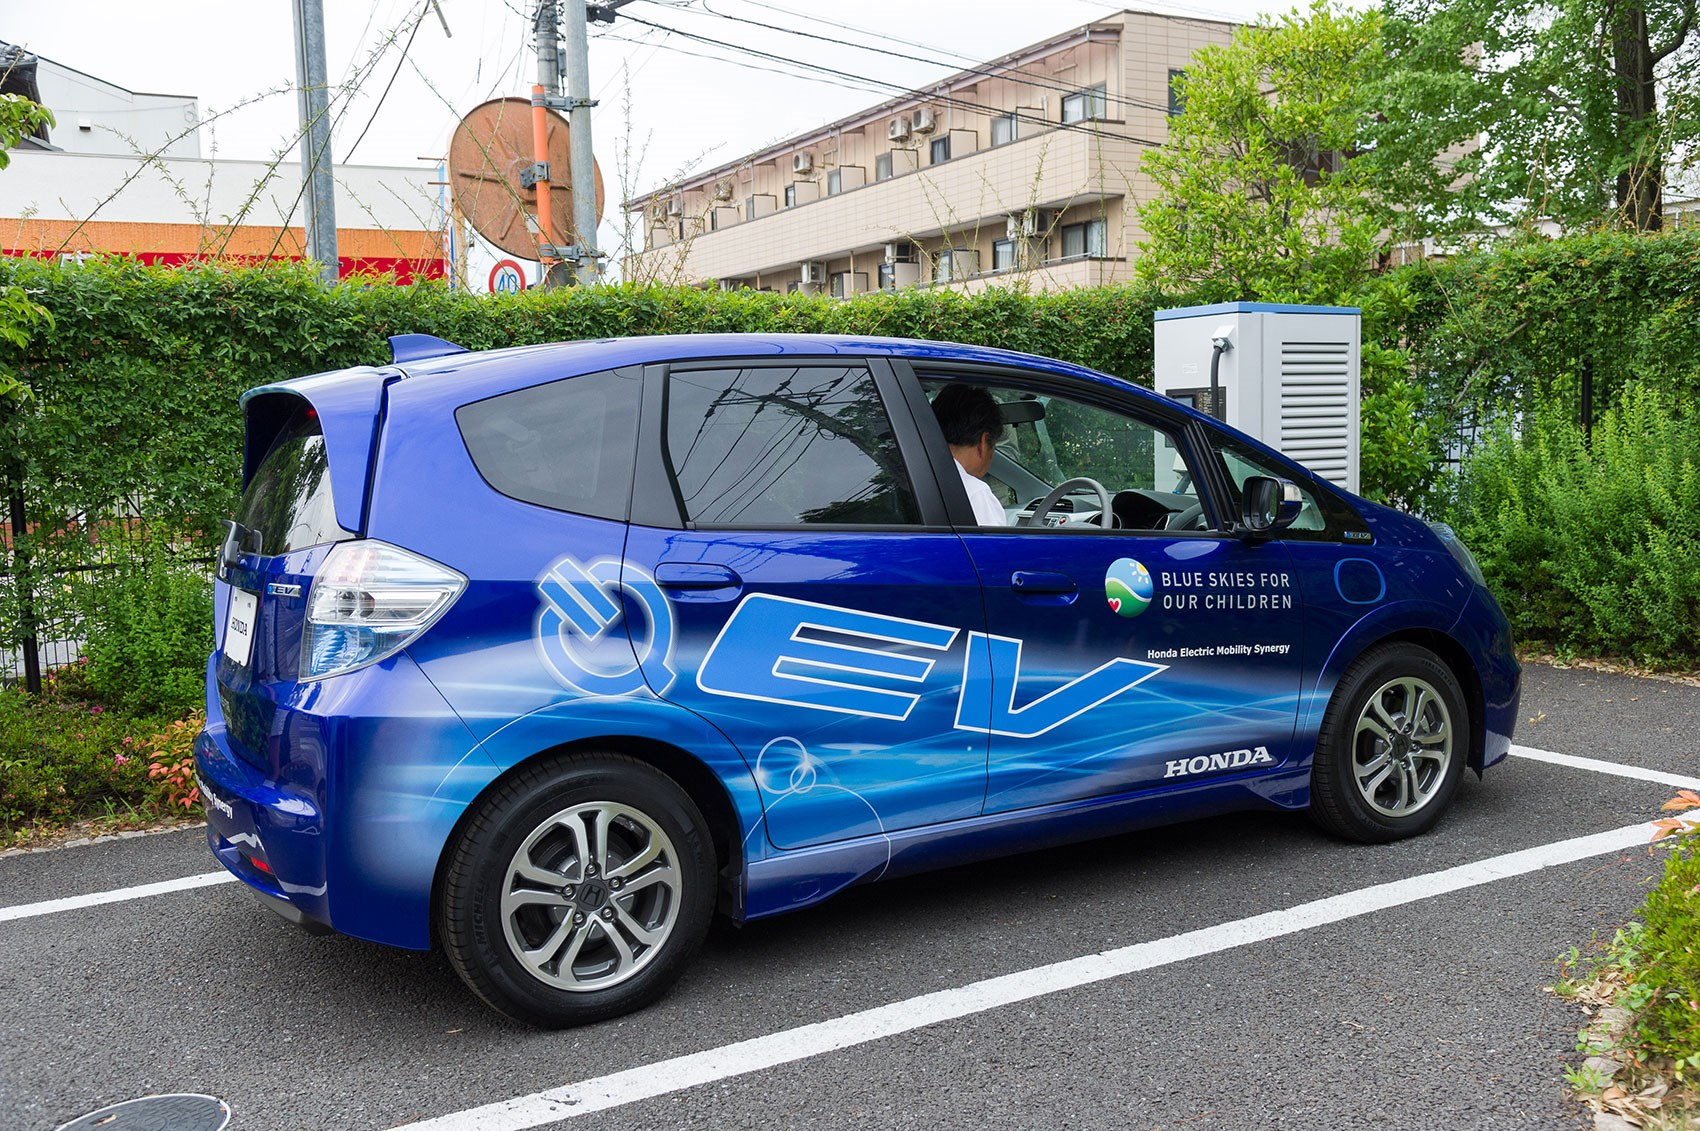 Honda Jazz Ev Charges Up At Home Whirrs Around Silently On The Daily Commute Smart